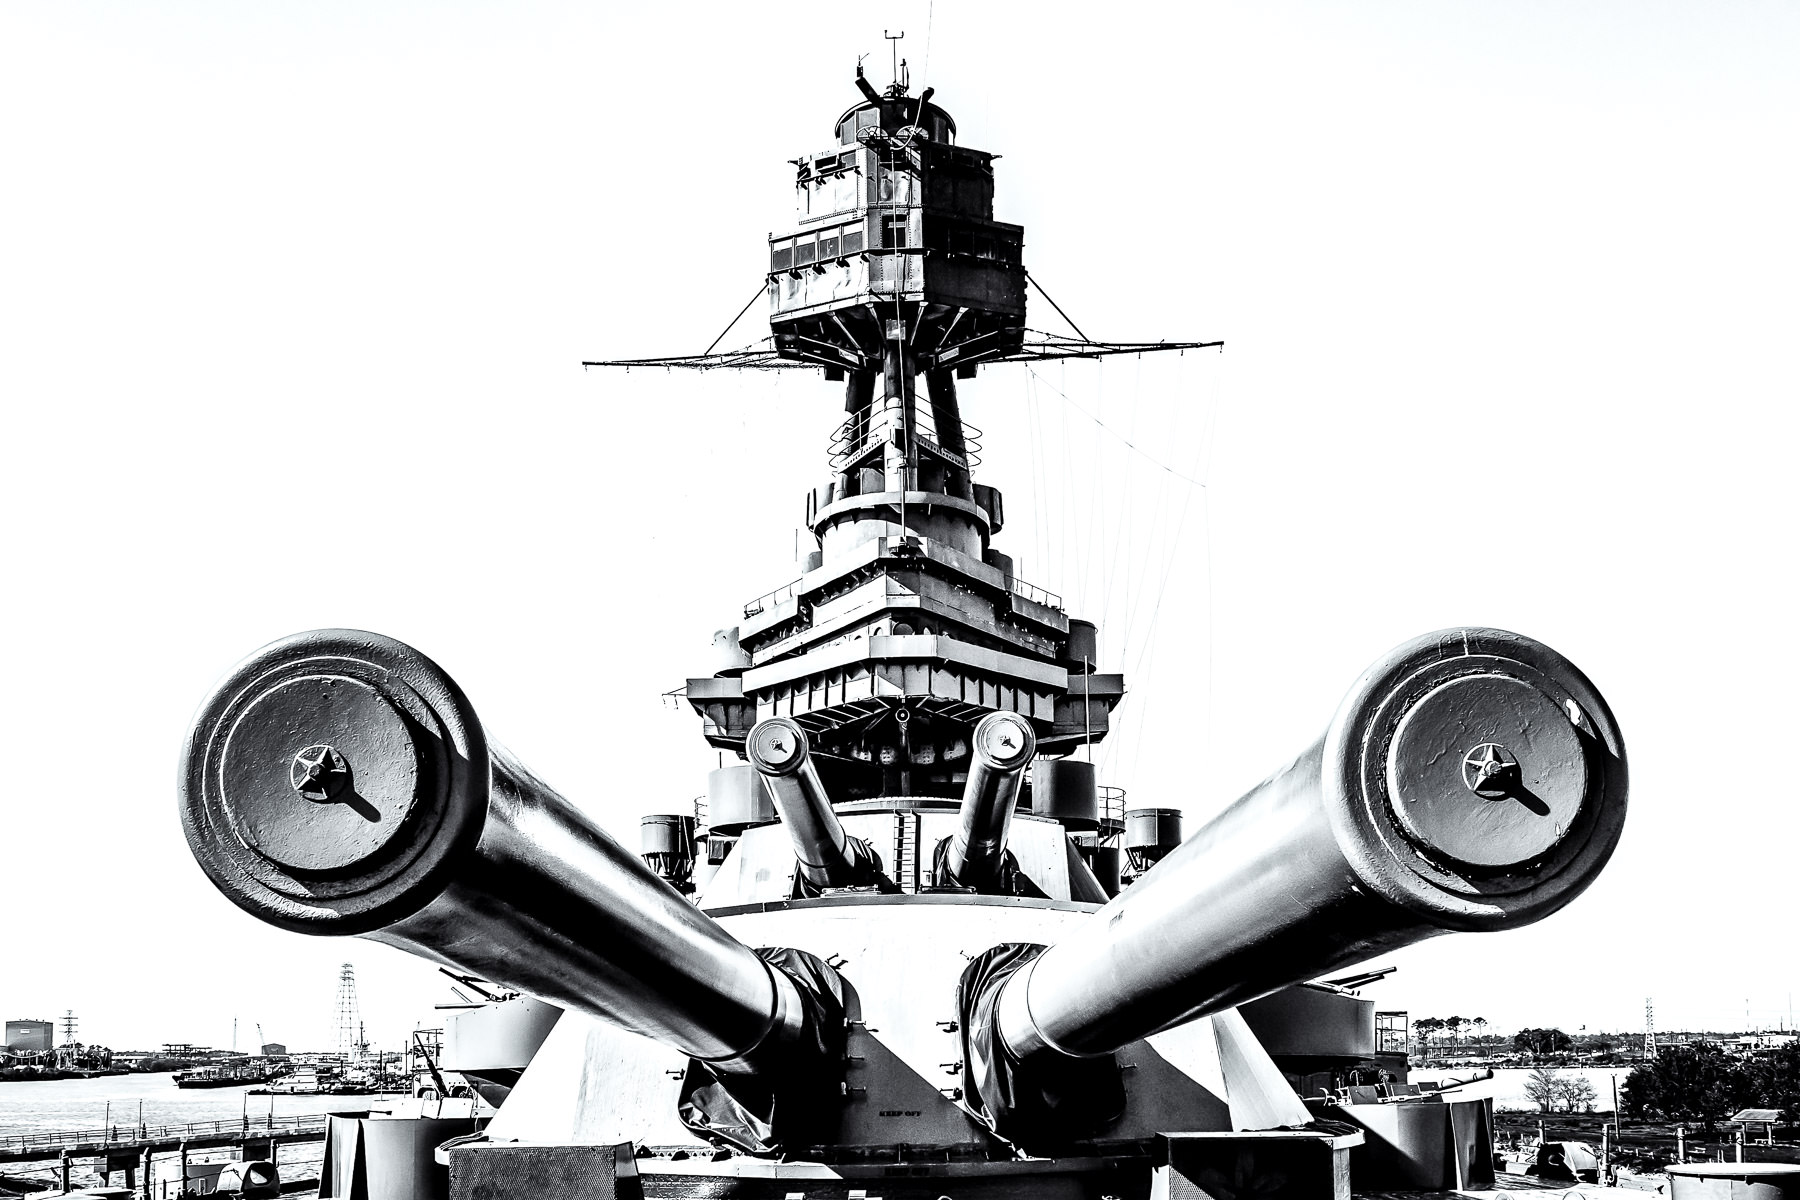 The 14-inch main guns, which could fire 1,400 lb. shells 13 miles, of the battleship USS Texas, now on display as a museum ship near Houston.